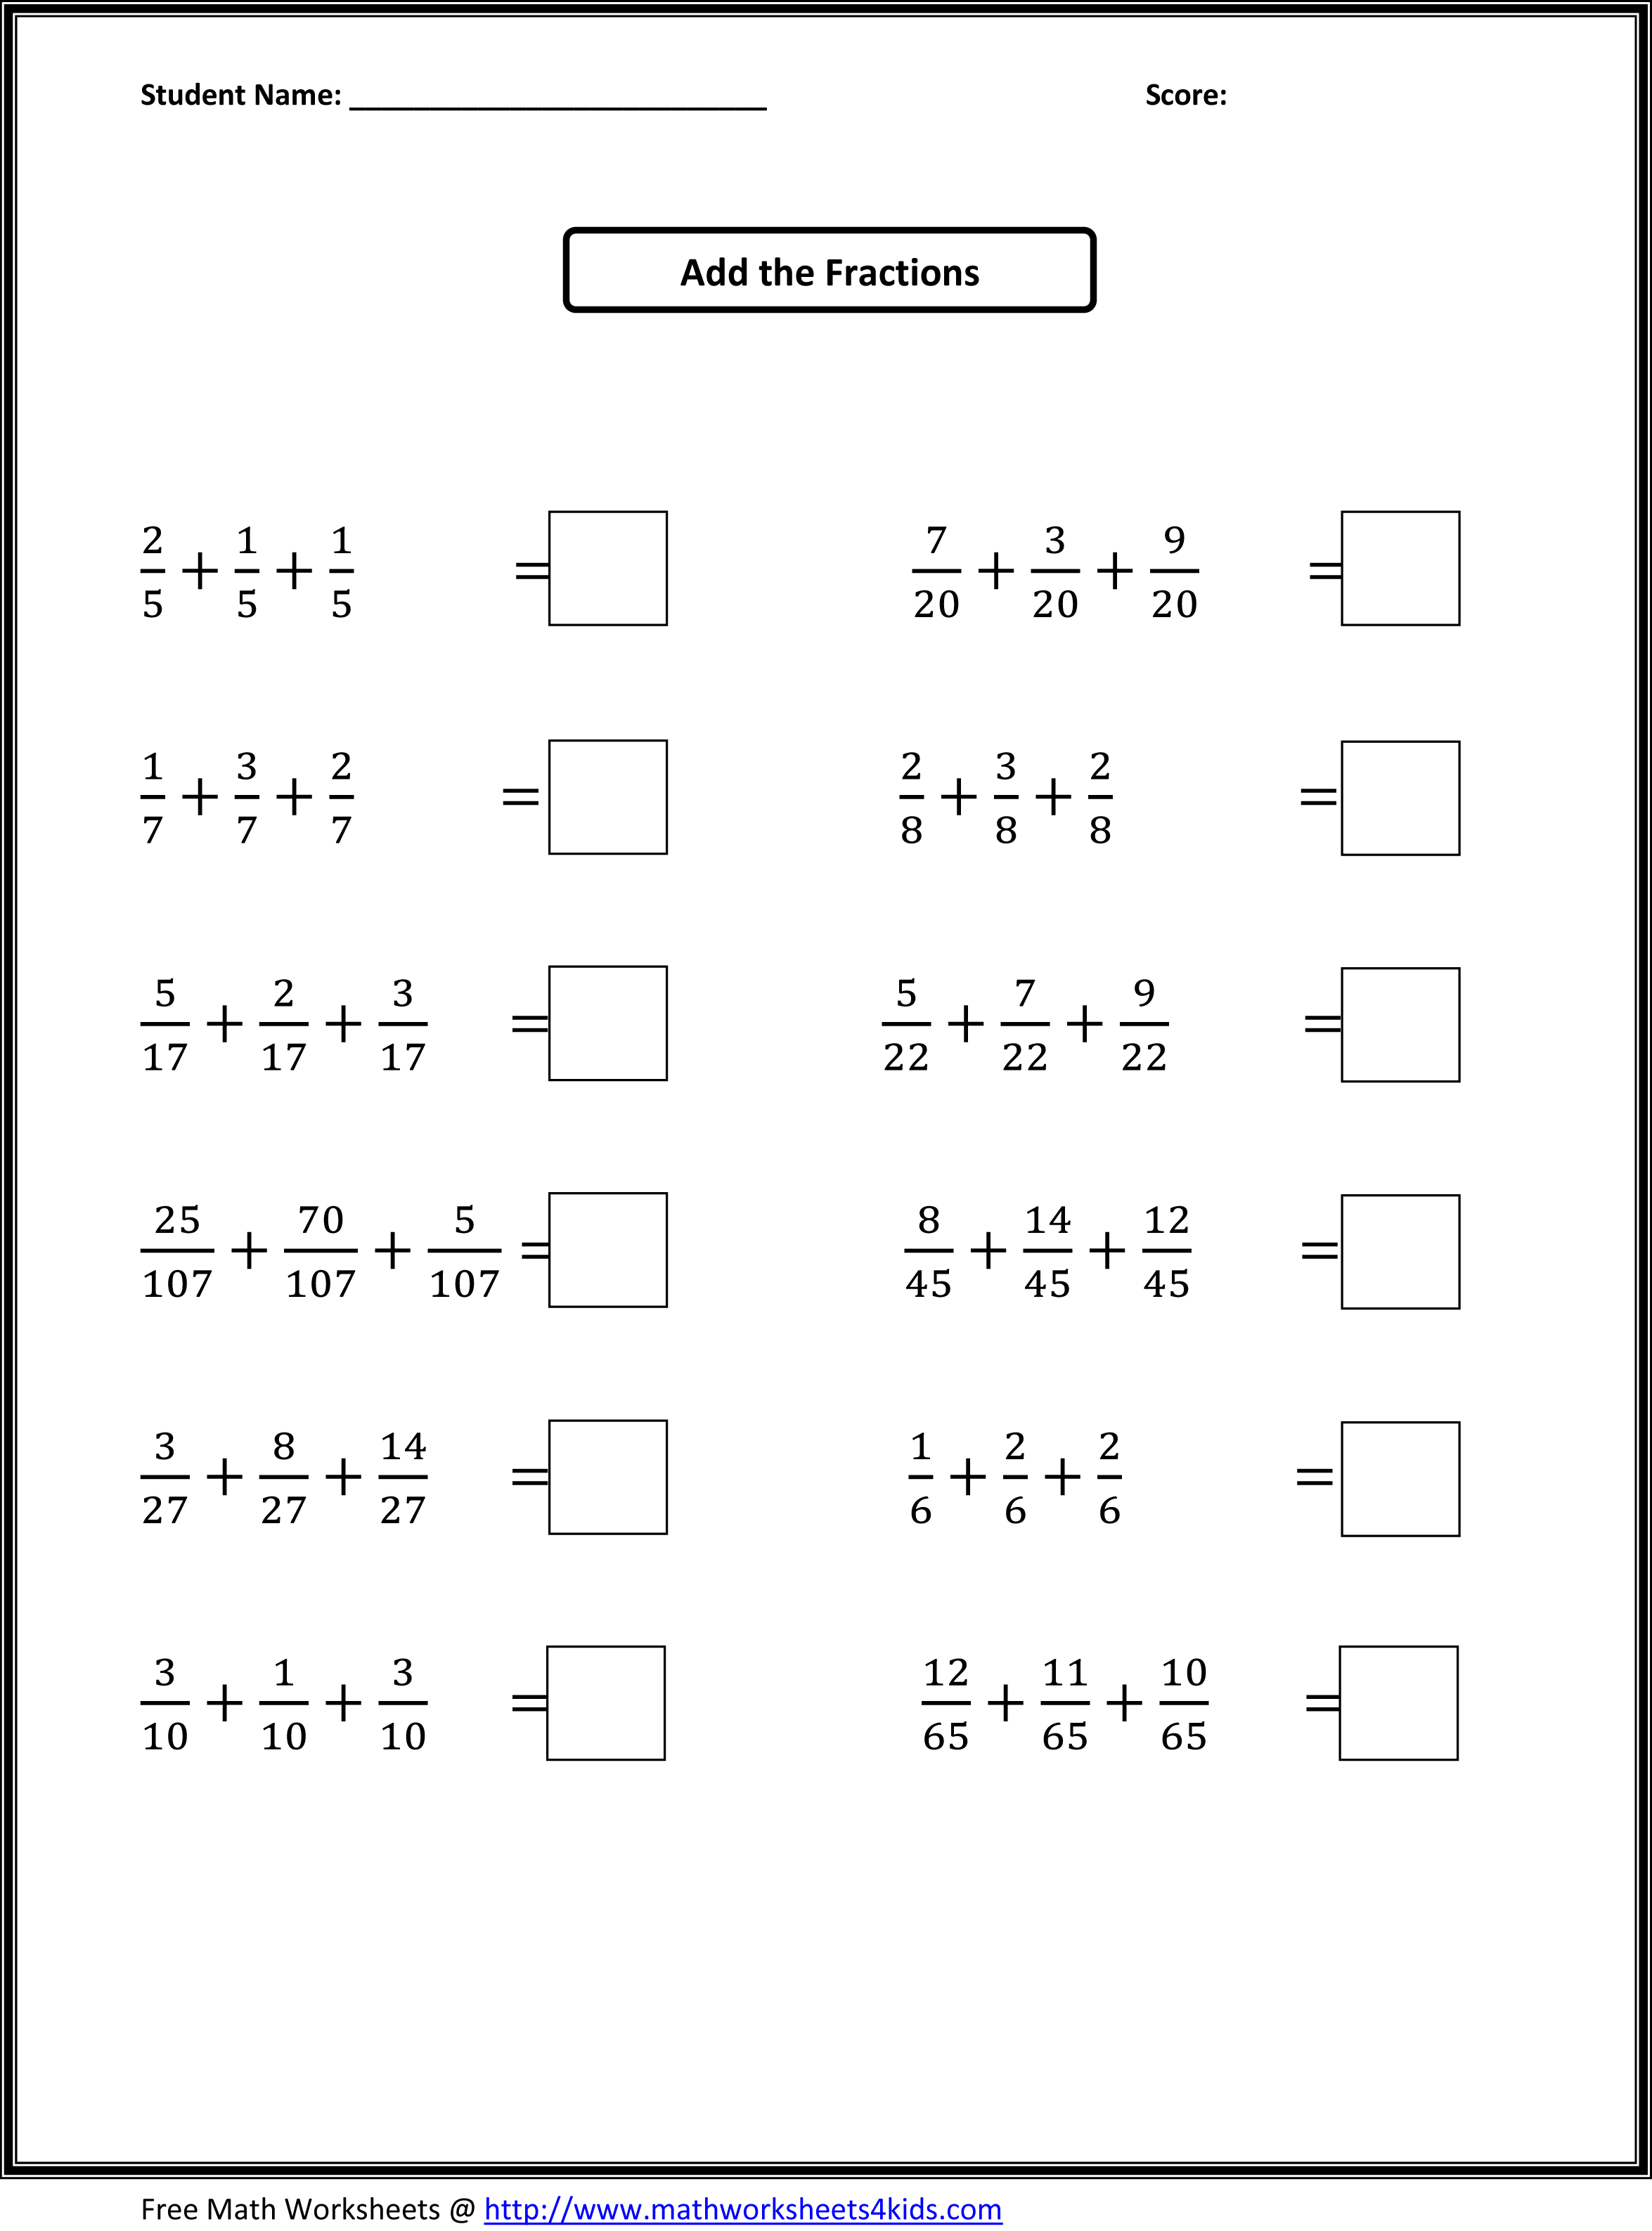 Free Worksheet 5th Grade Math Fraction Worksheets worksheet 17002200 3rd grade fractions worksheets comparing maths year 2 worksheets